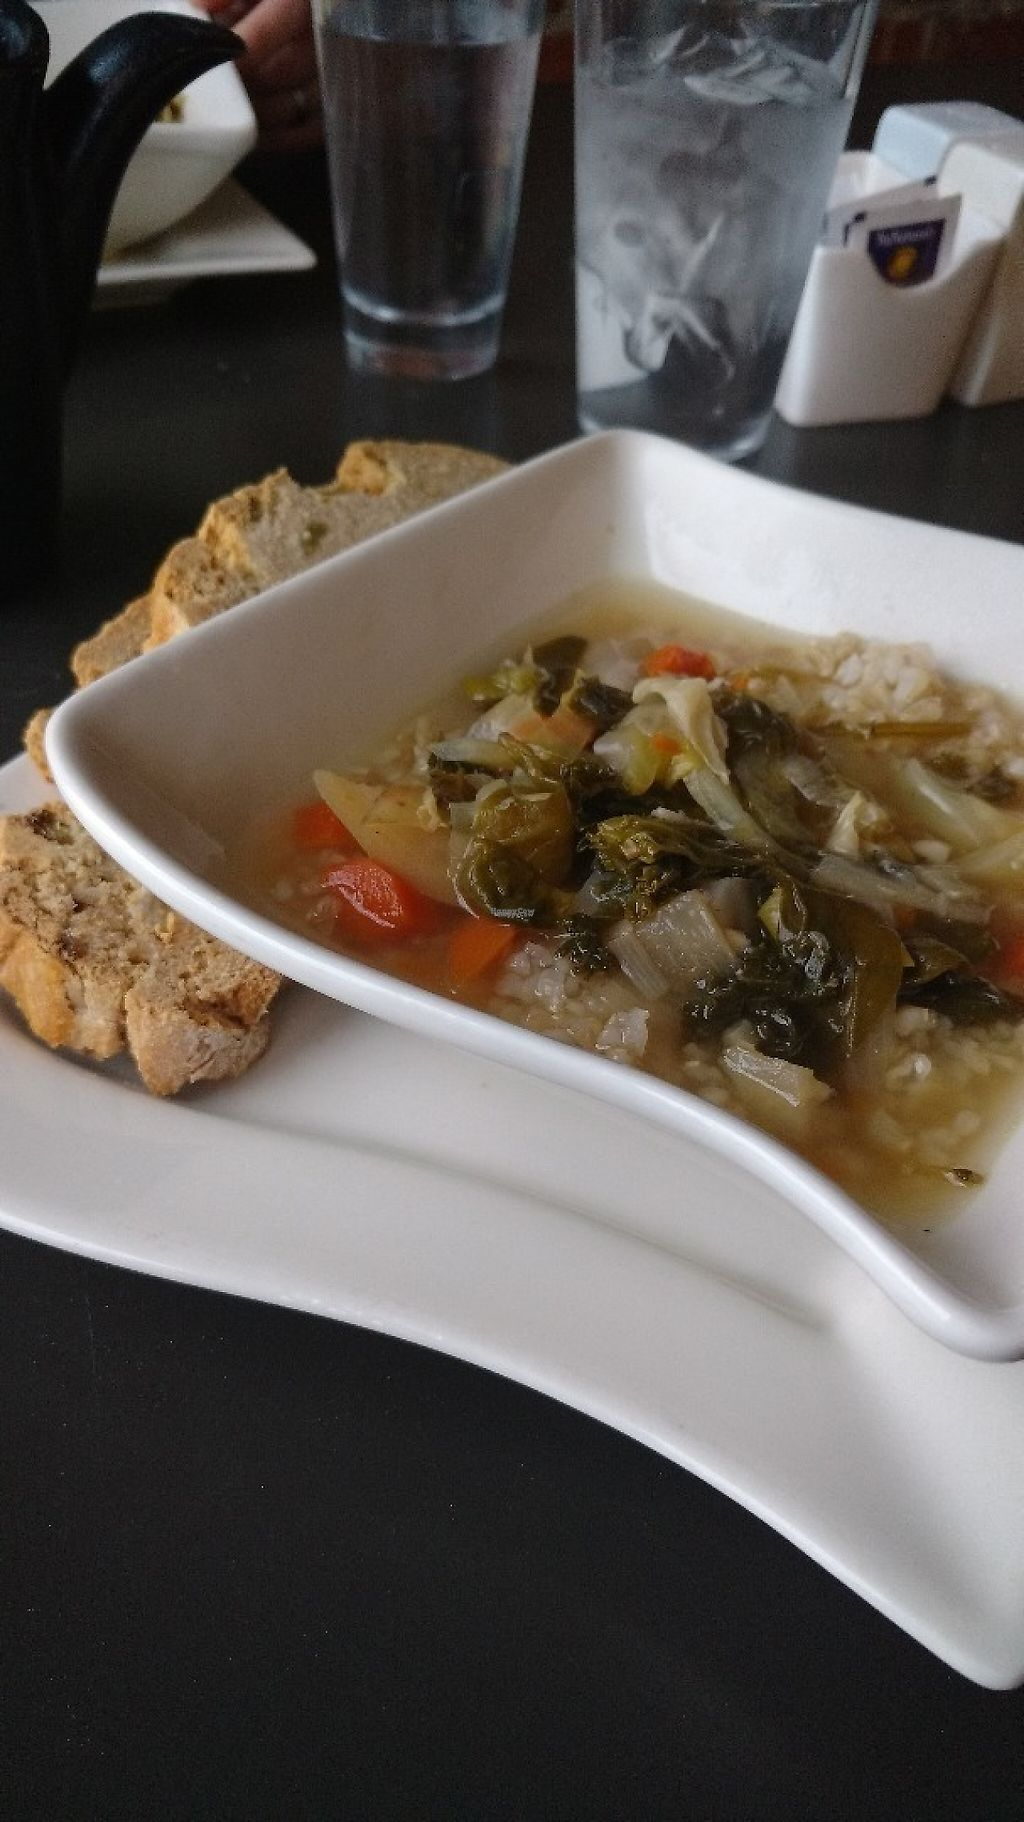 """Photo of The Hummingbird Cafe  by <a href=""""/members/profile/chrisvobe"""">chrisvobe</a> <br/>Side Soup with Irish Soda Bread (Dinner) <br/> March 19, 2017  - <a href='/contact/abuse/image/14944/238181'>Report</a>"""